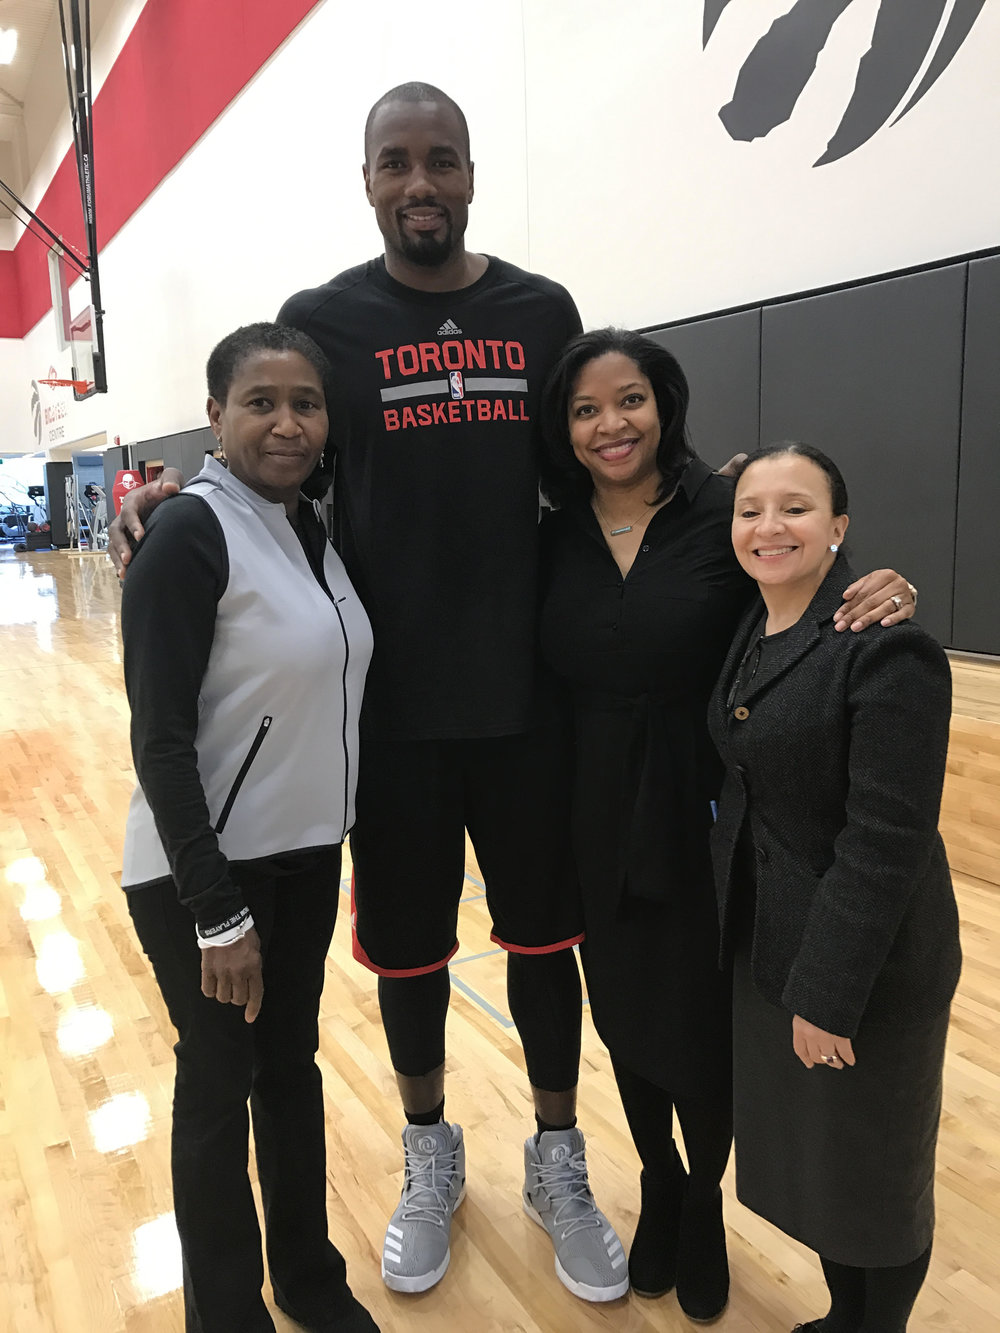 [L to R] At the Biosteele Centre Toronto, Ontario: Michele Roberts - Executive Director, NBPA; Serge Ibaka - Professional Basketball Player, NBA Toronto Raptors; Sherrie Deans - Executive Director, NBPA Foundation; Chrysa Chin - Executive Vice President, Strategy & Development, NBPA